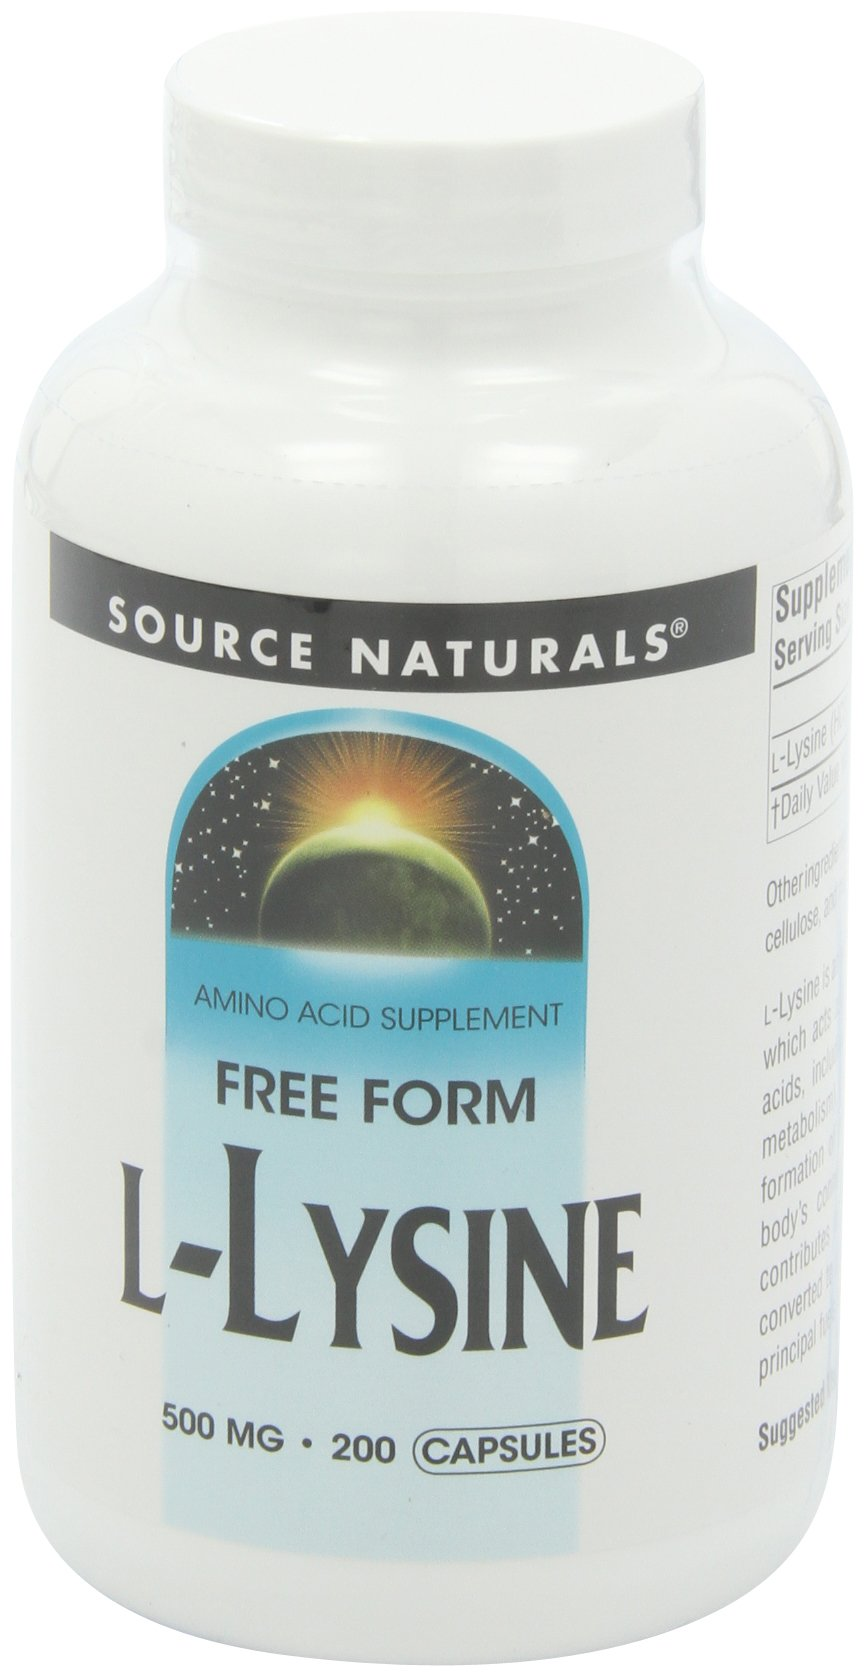 L-Lysine 500 mg 200 Capsule (Pack of 3) by Source Naturals